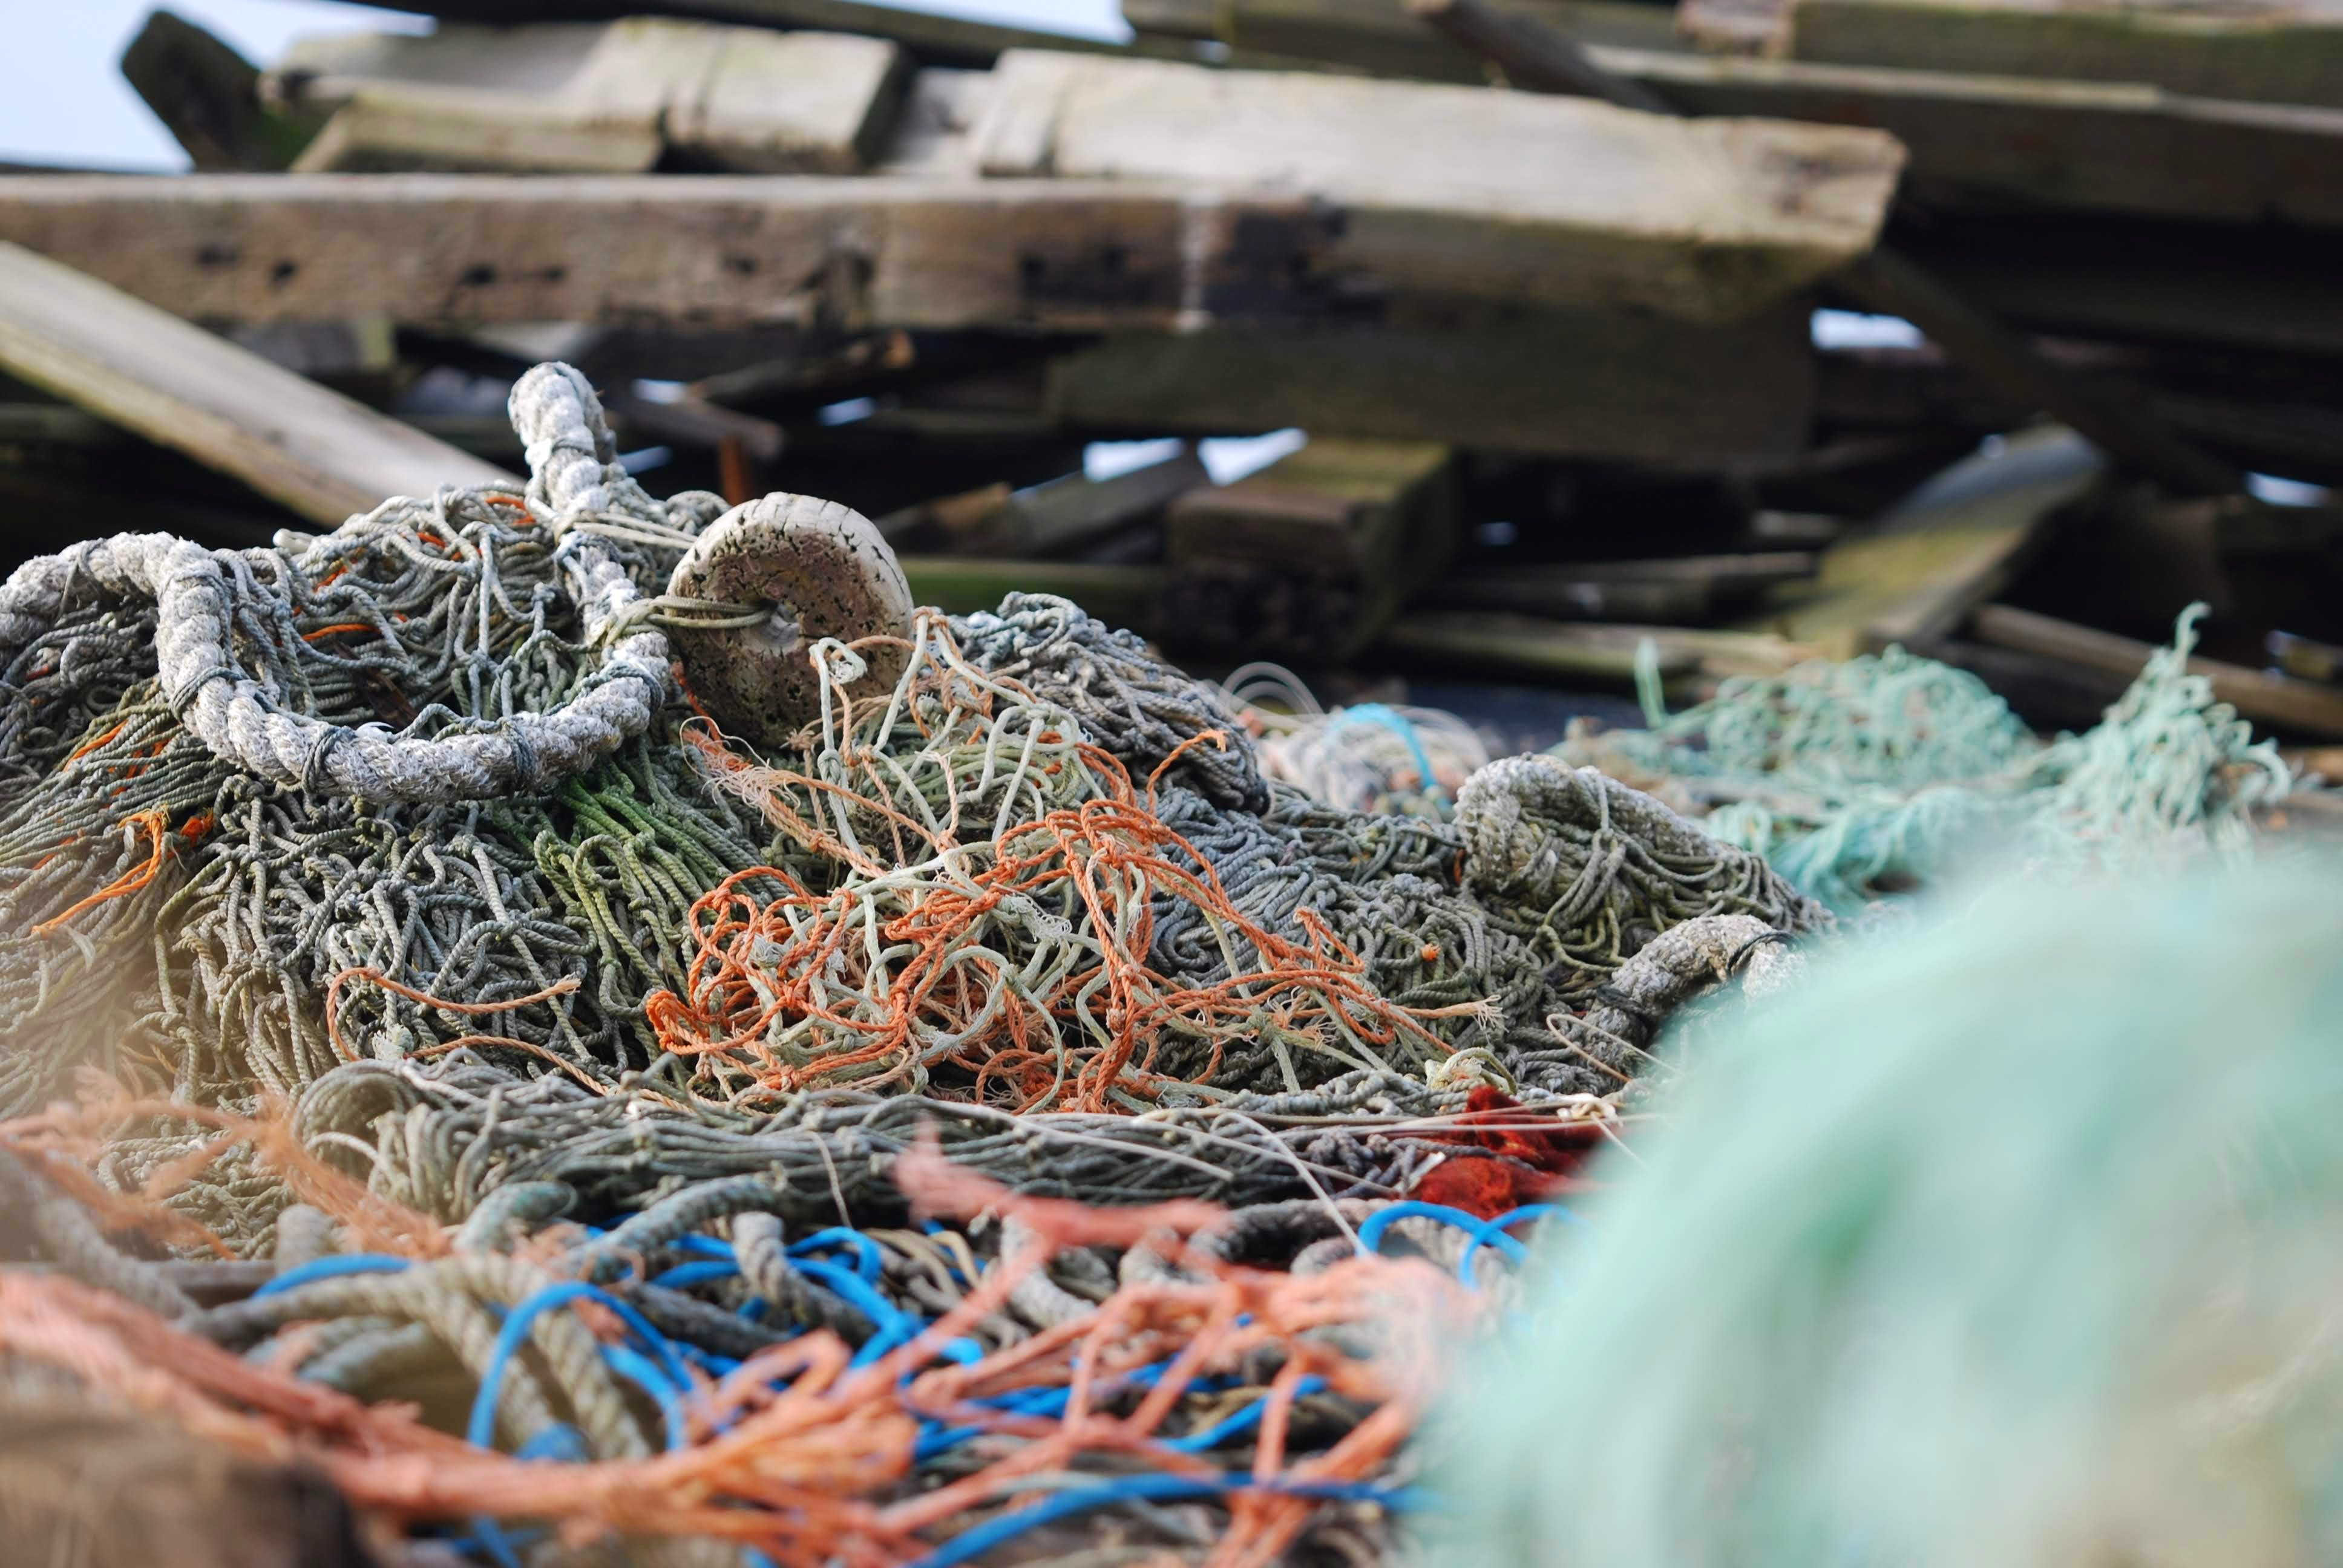 An $8 million, two-year program led by Fisheries and Oceans Canada has collected tons of lost fishing gear in the first year, according to the department.